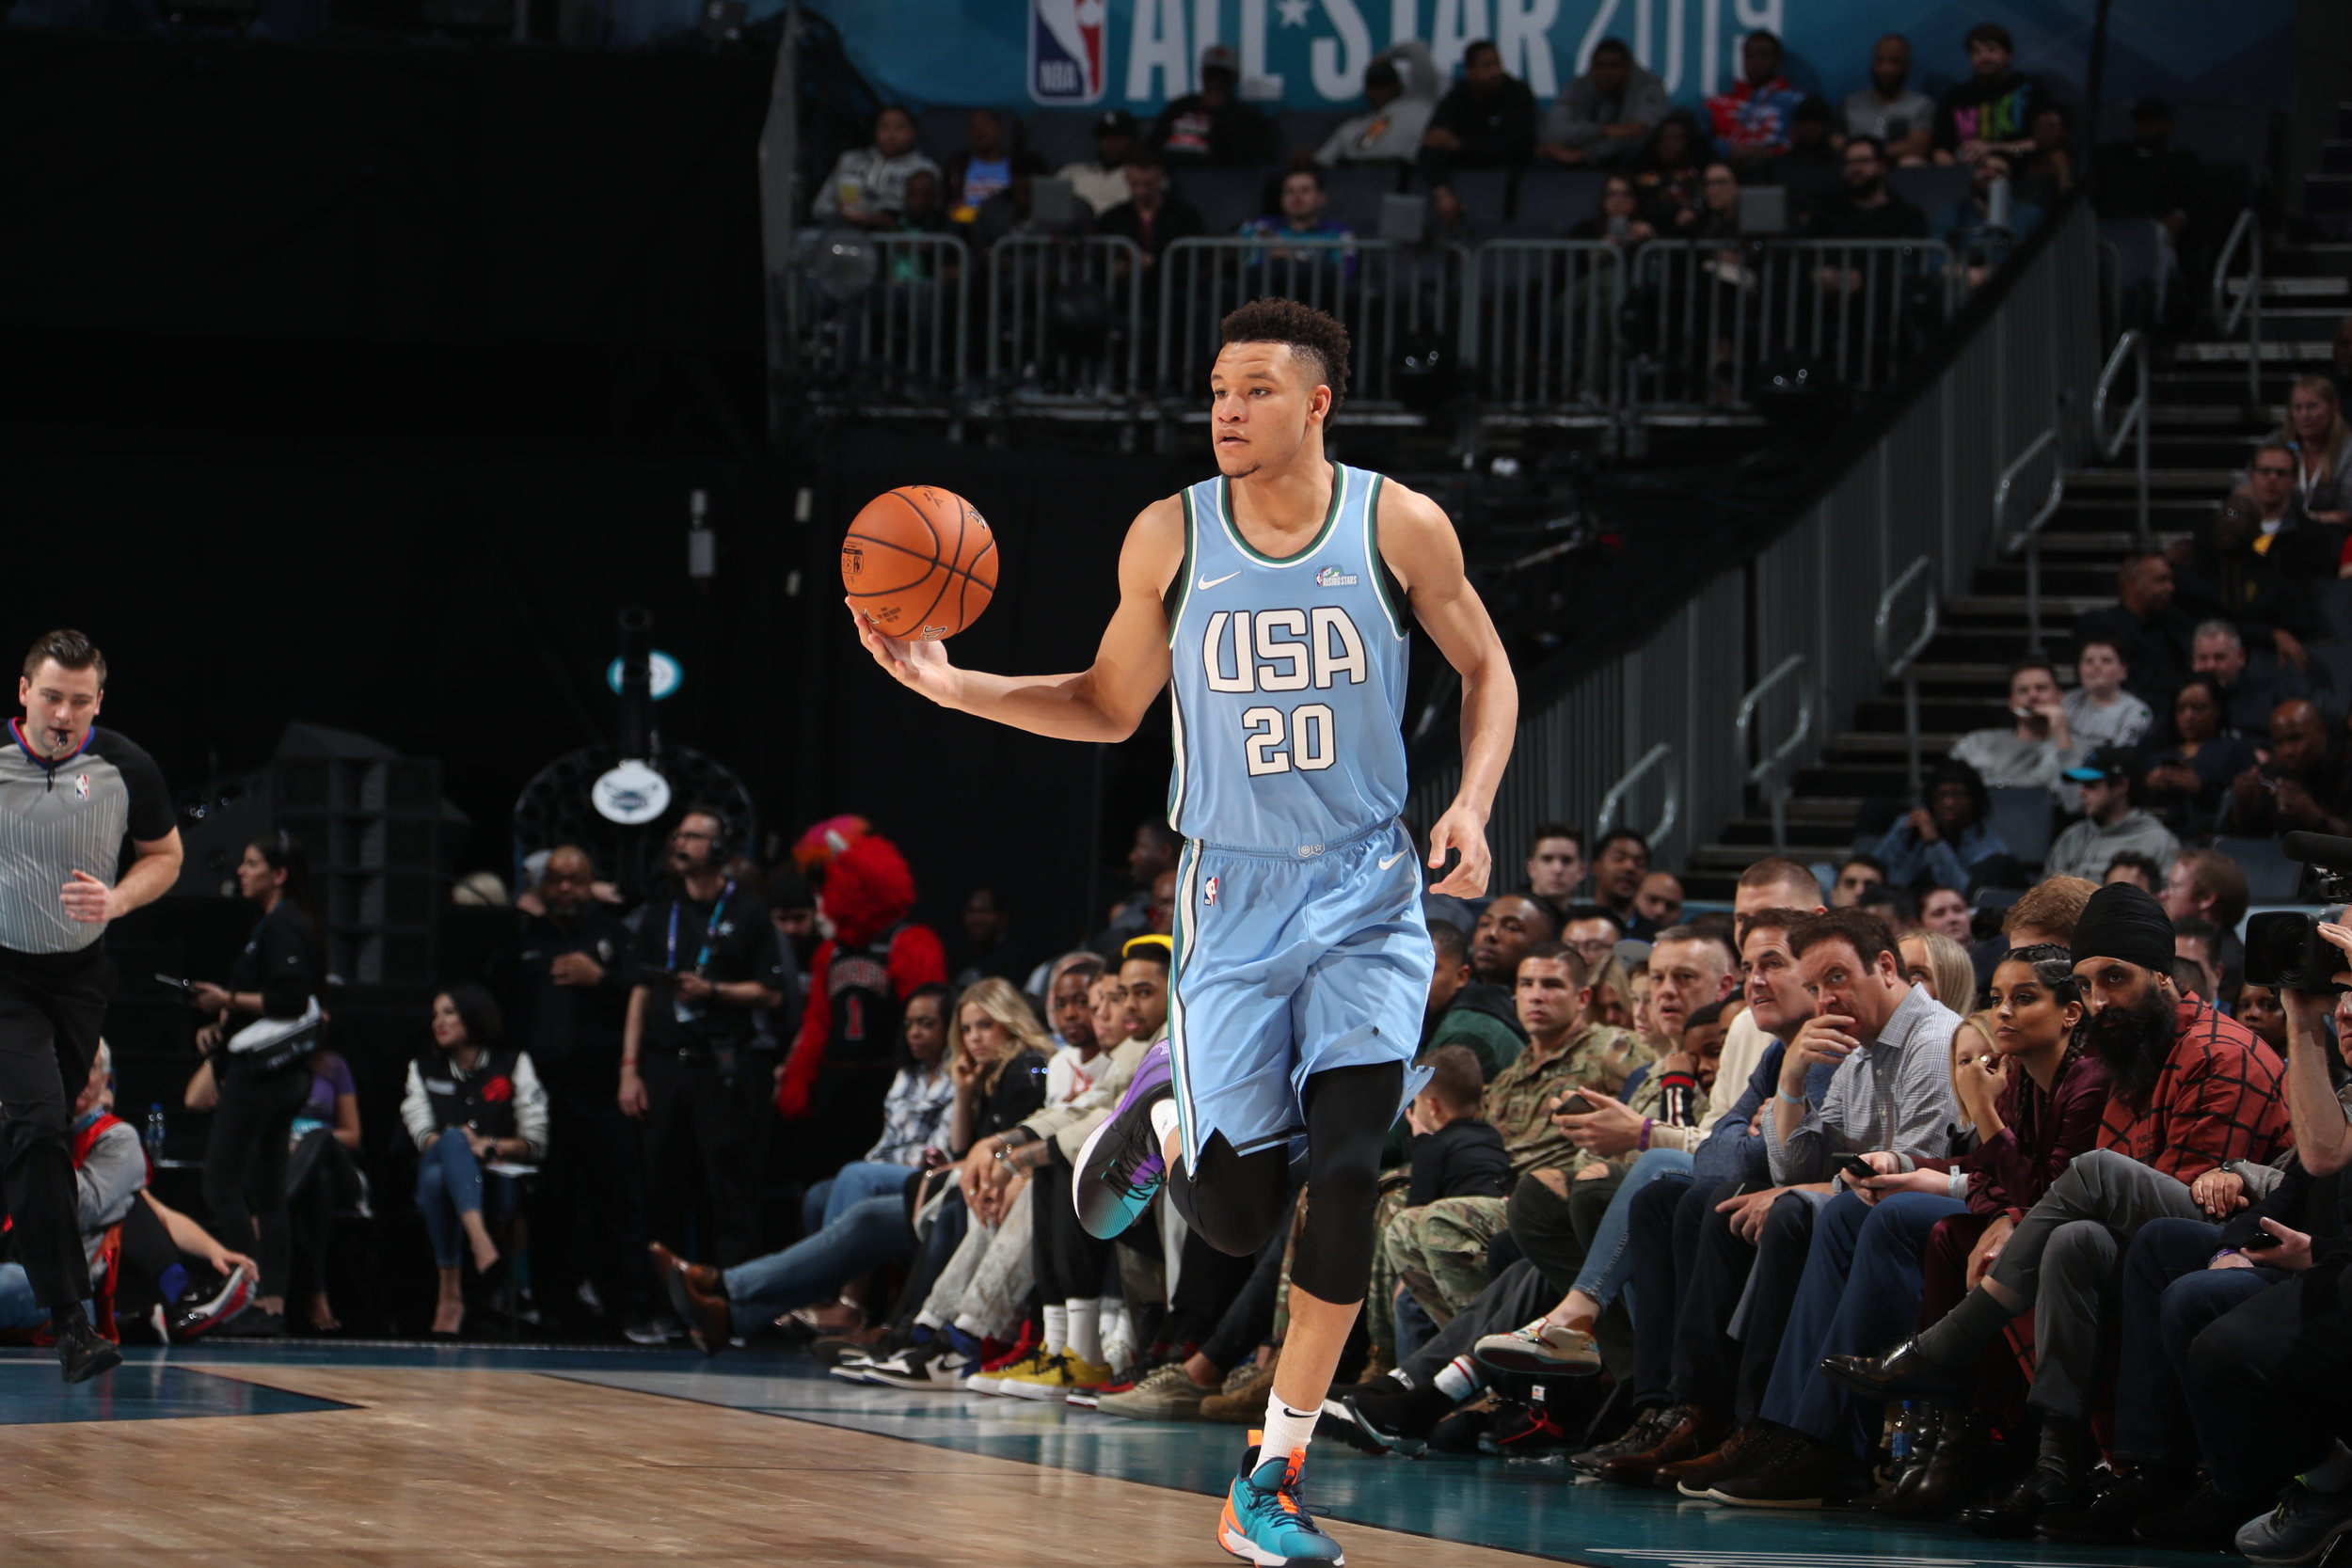 CHARLOTTE, NC - FEBRUARY 15:  during the 2019 Mtn Dew ICE Rising Stars Game on February 15, 2019 at the Spectrum Center in Charlotte, North Carolina. NOTE TO USER: User expressly acknowledges and agrees that, by downloading and/or using this photograph, user is consenting to the terms and conditions of the Getty Images License Agreement. Mandatory Copyright Notice: Copyright 2019 NBAE (Photo by Nathaniel S. Butler /NBAE via Getty Images)